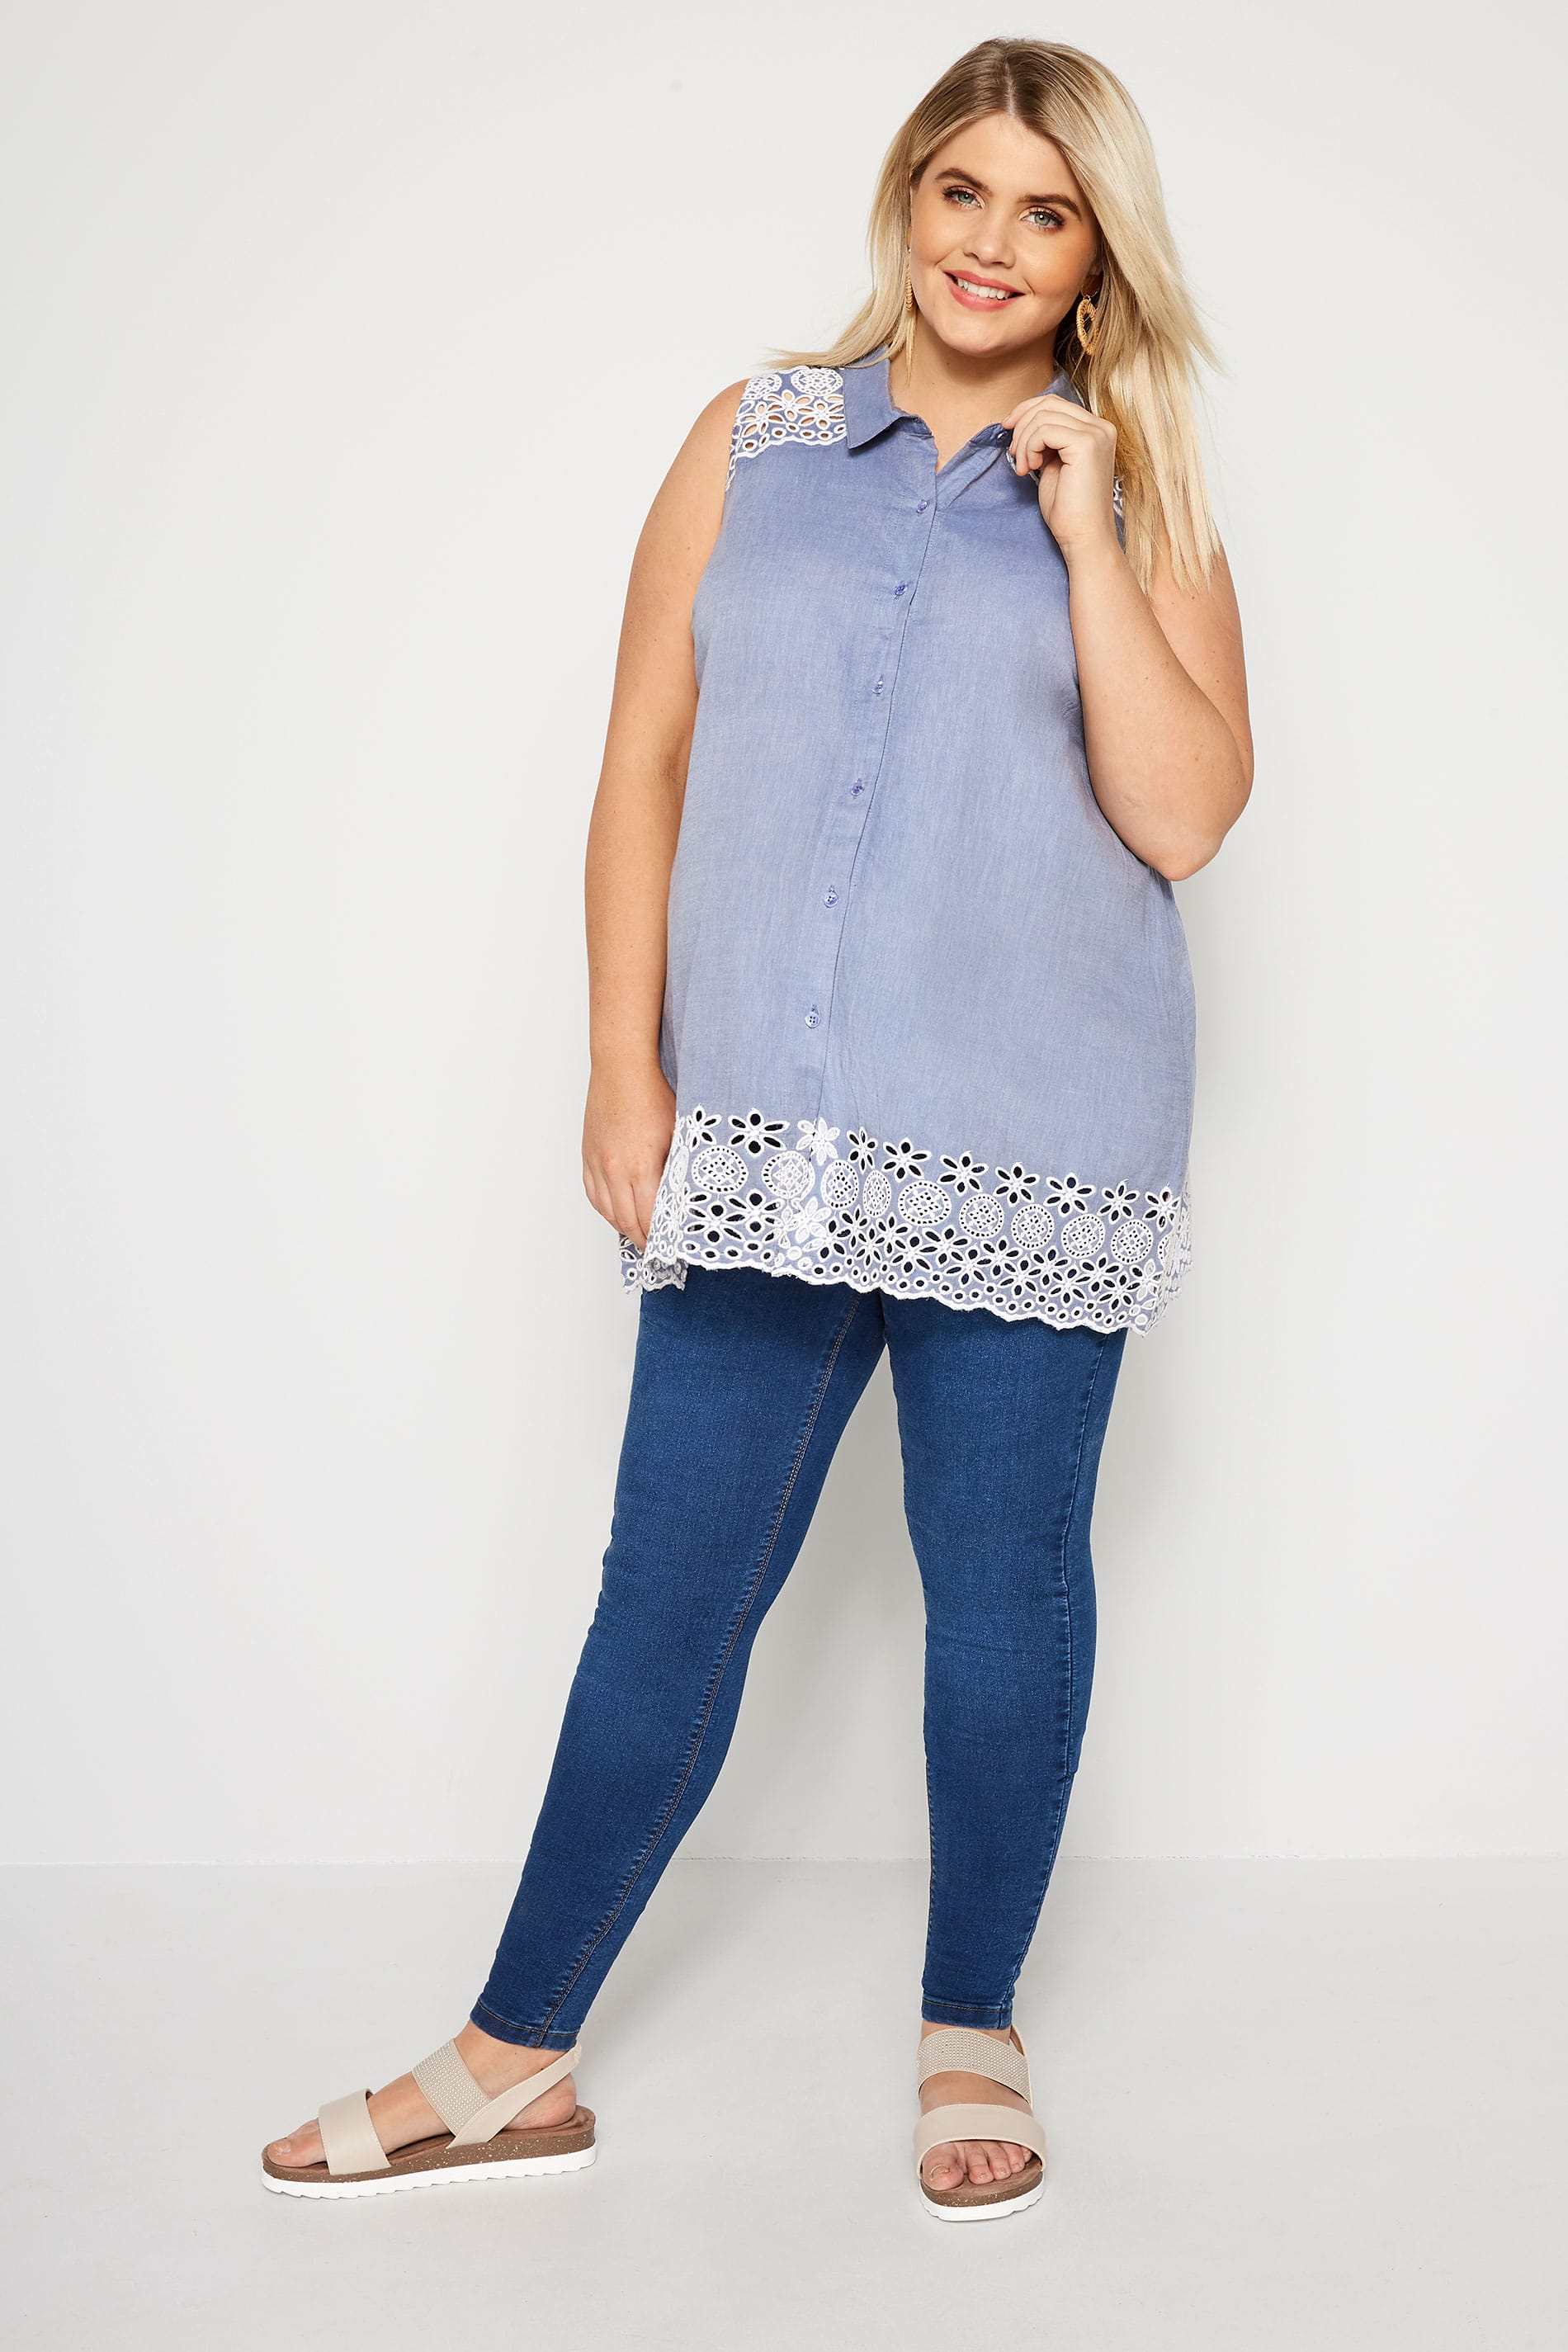 09f876910238f BUMP IT UP MATERNITY Blue Chambray Embroidered Shirt | Plus Sizes 16 ...